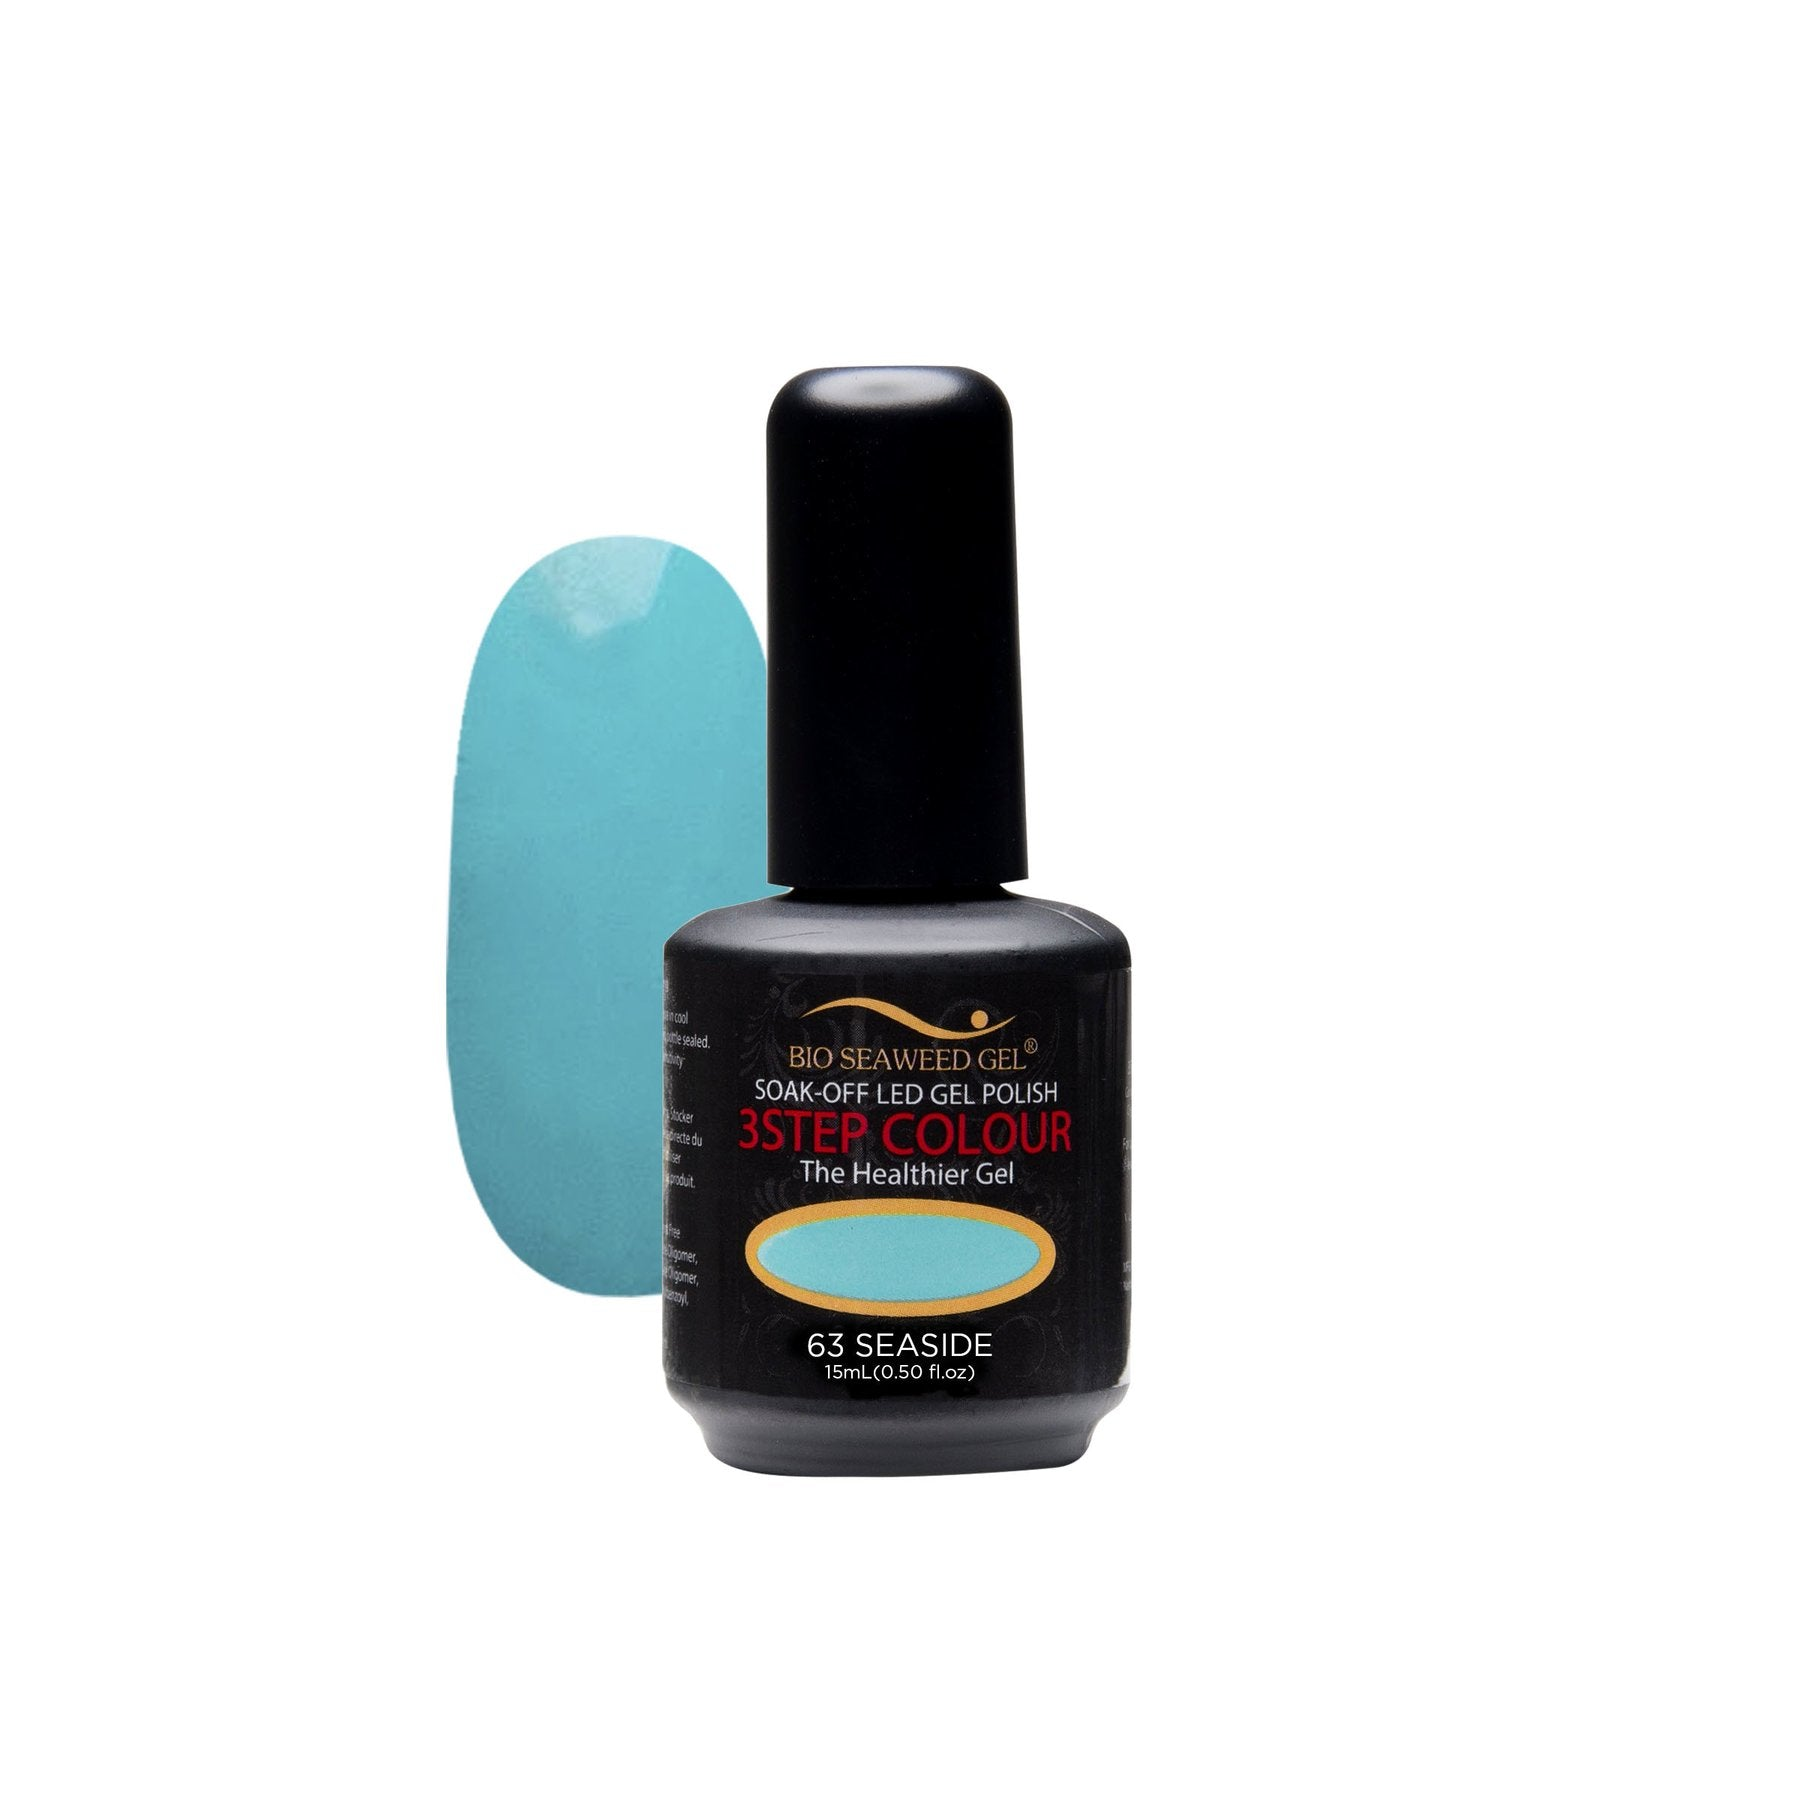 63 Seaside | Bio Seaweed Gel® - CM Nails & Beauty Supply